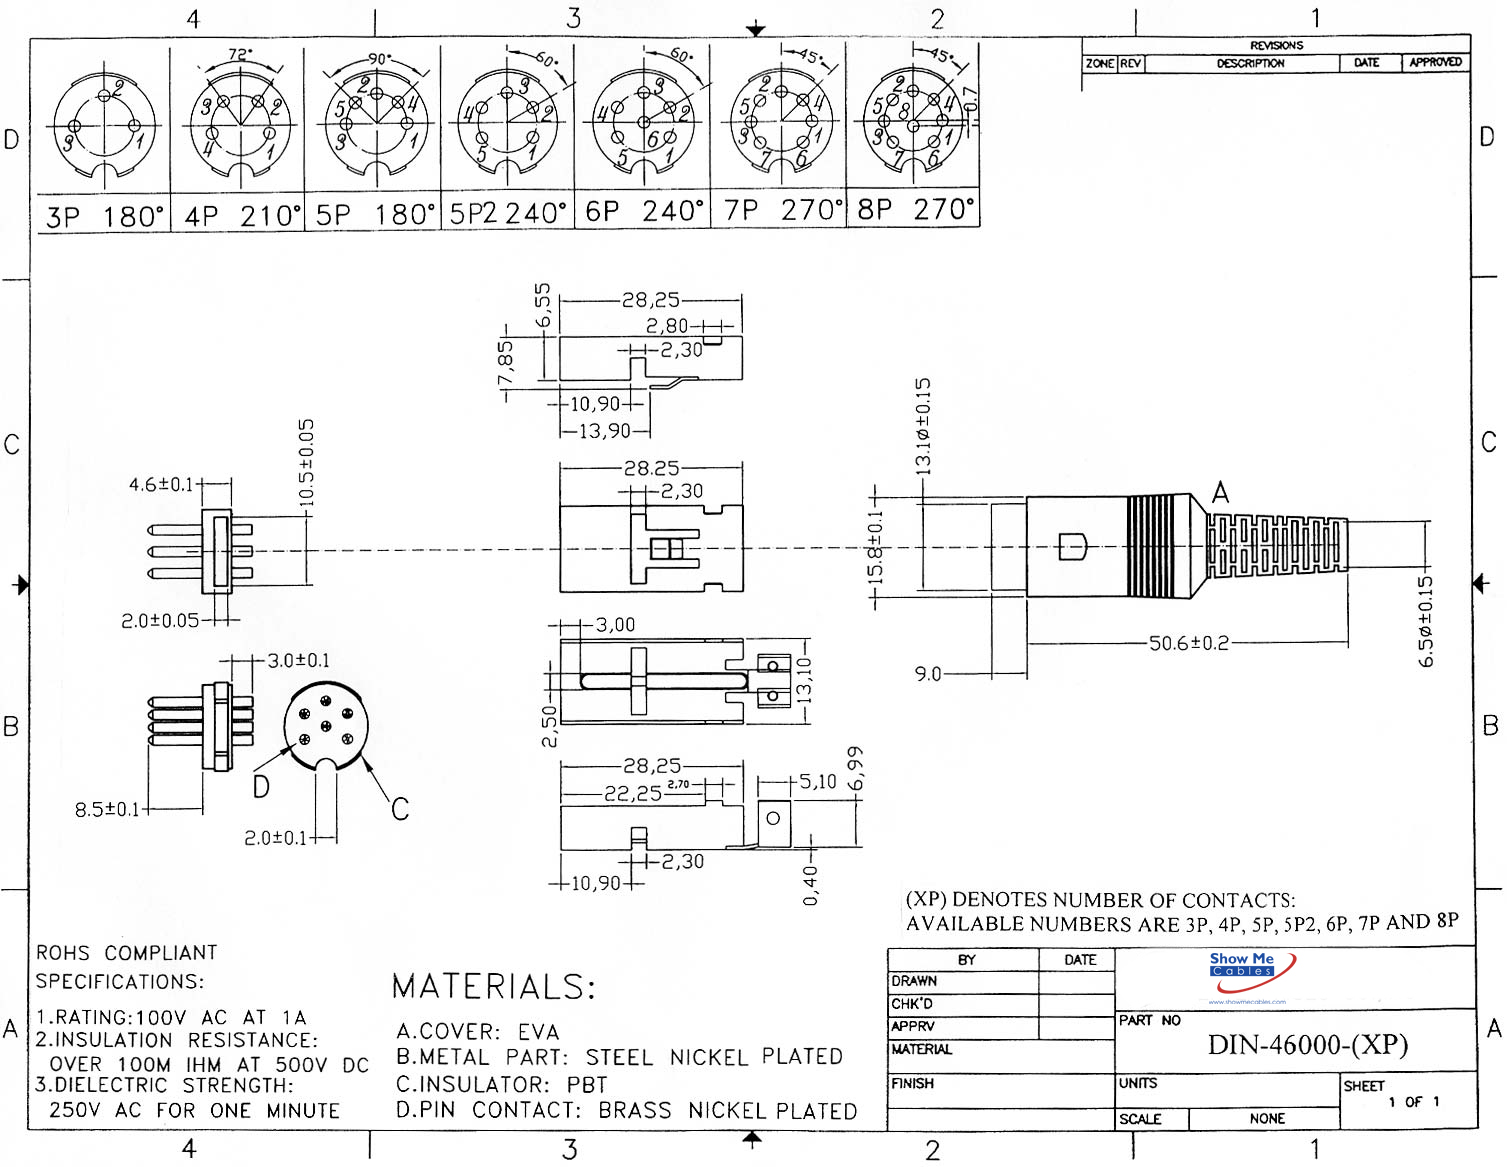 8 Pin Din Male Solder Connector Plastic 270 Style Diagram Further Pinout On 9 Click Here To Download The Spec Sheet